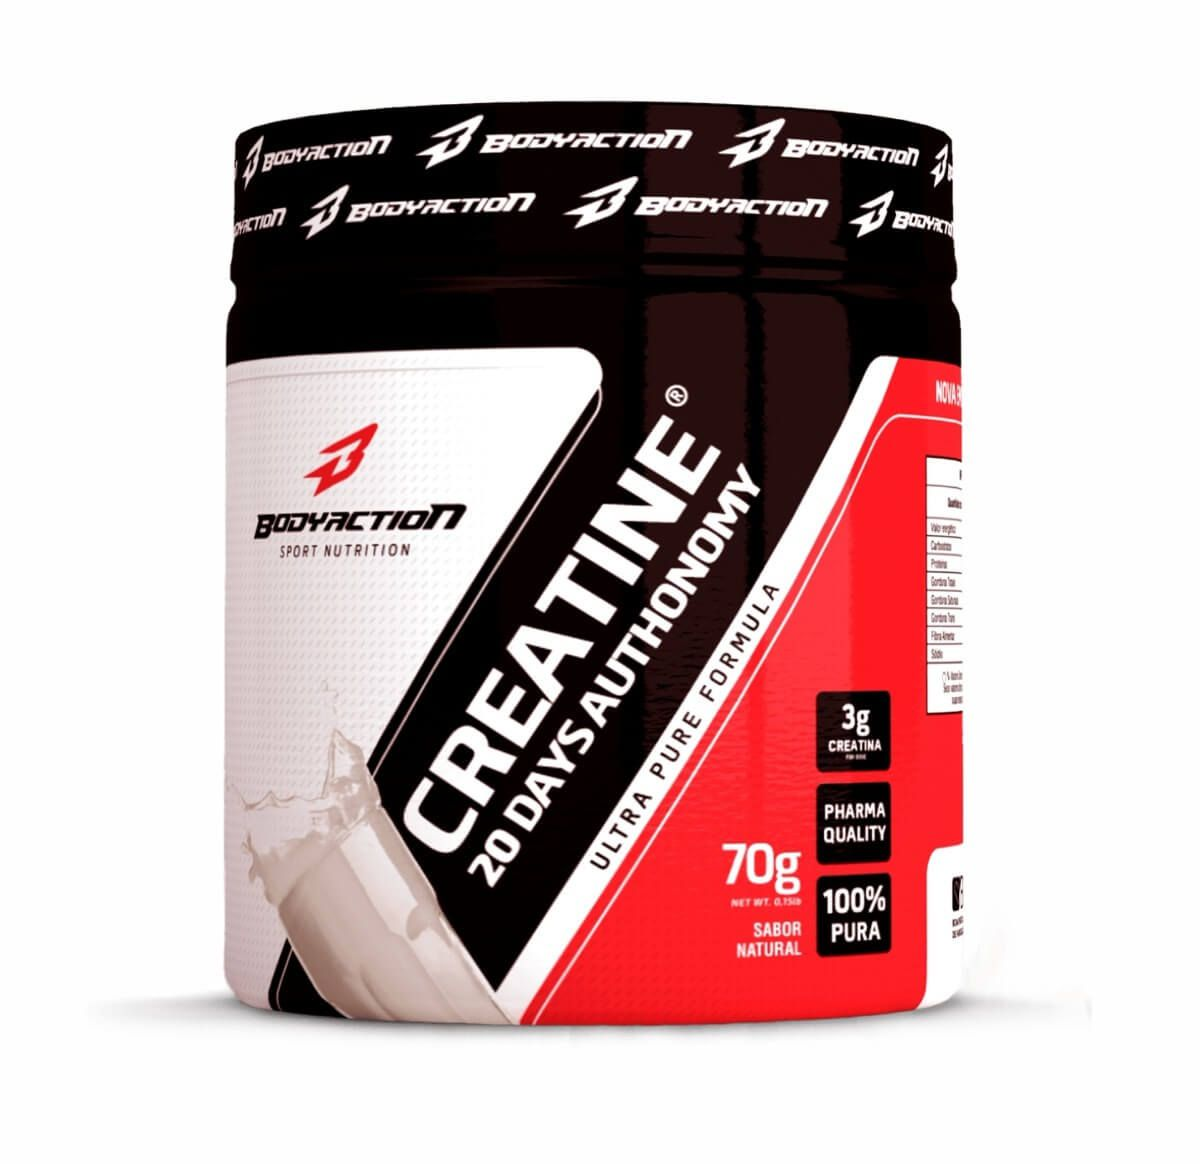 Creatina 20 Days Autonomy Body Action - 70g